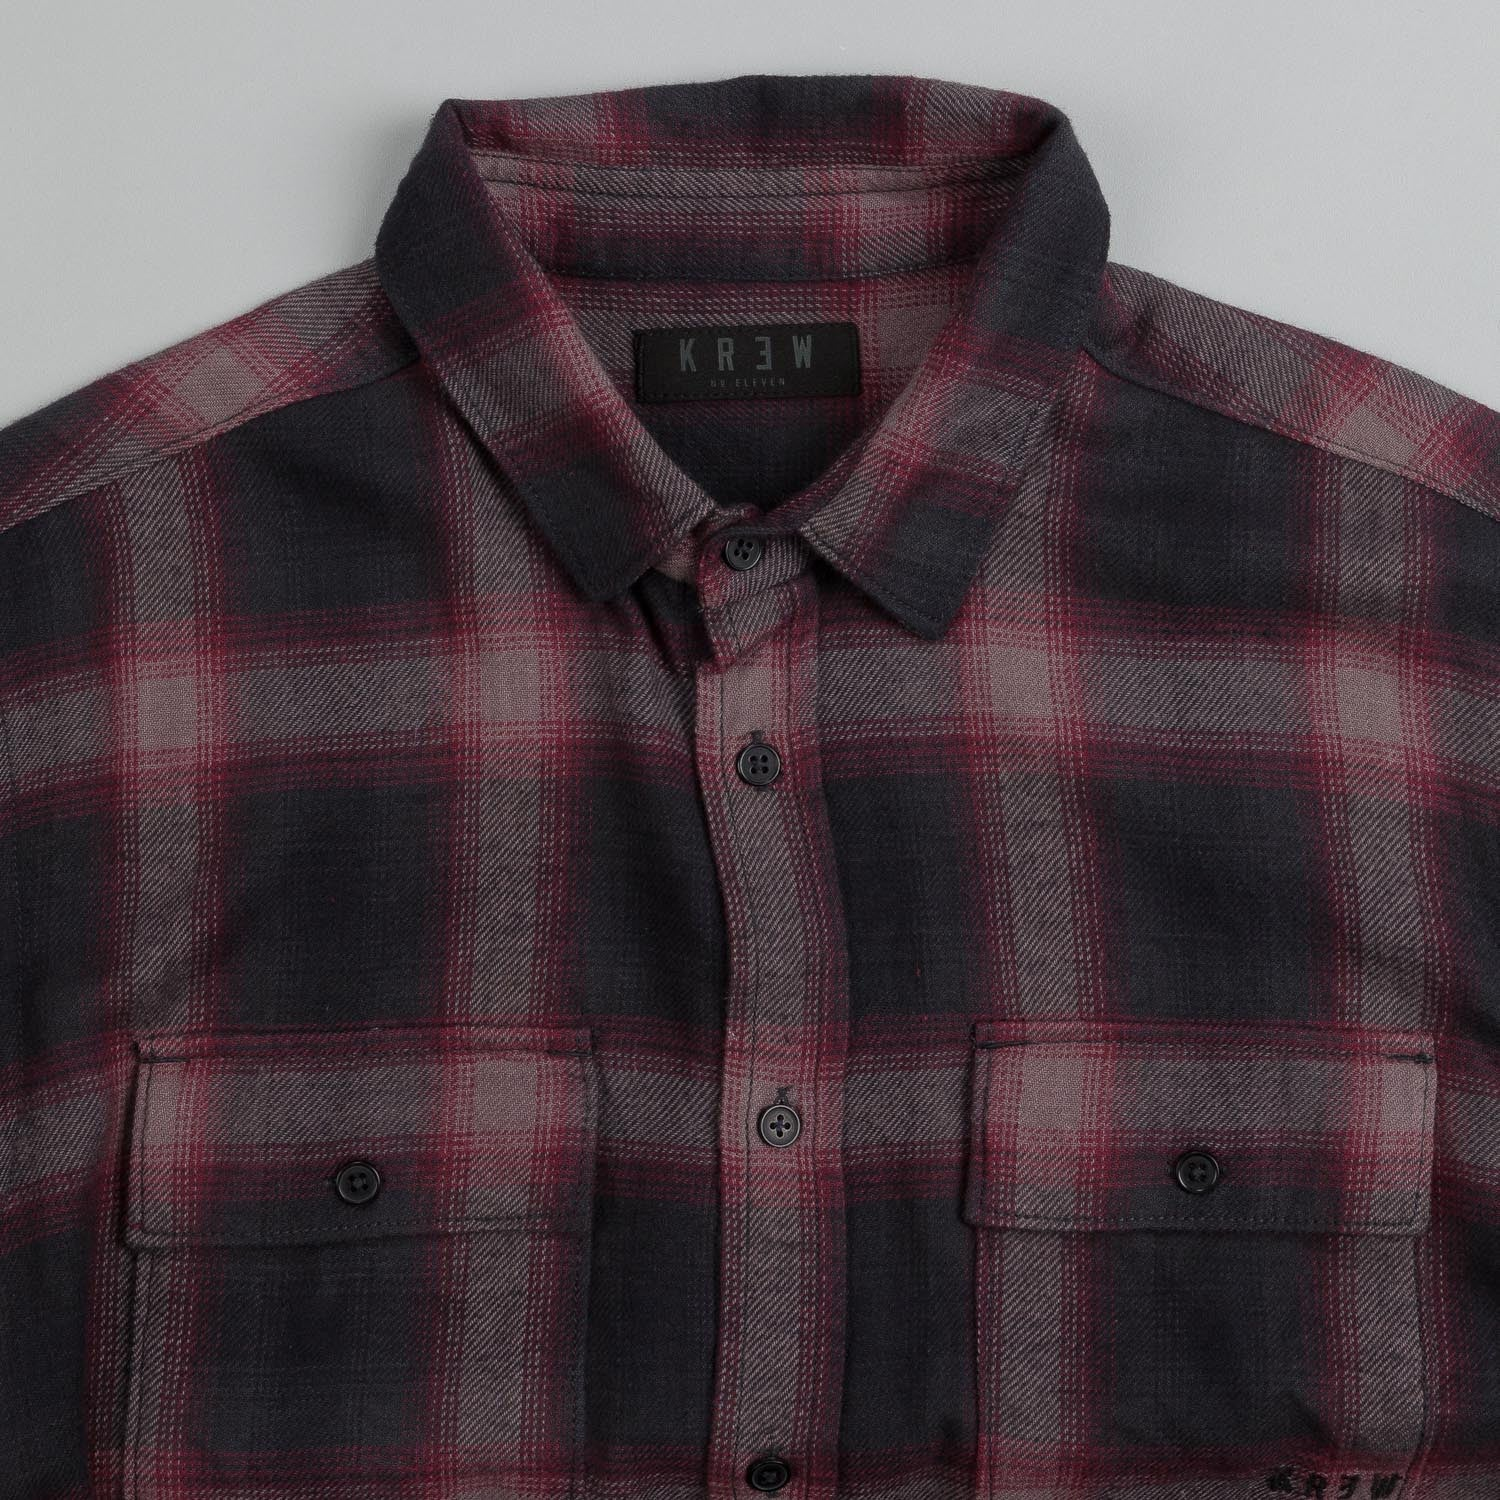 Kr3w Ambush Shirt Black Plaid